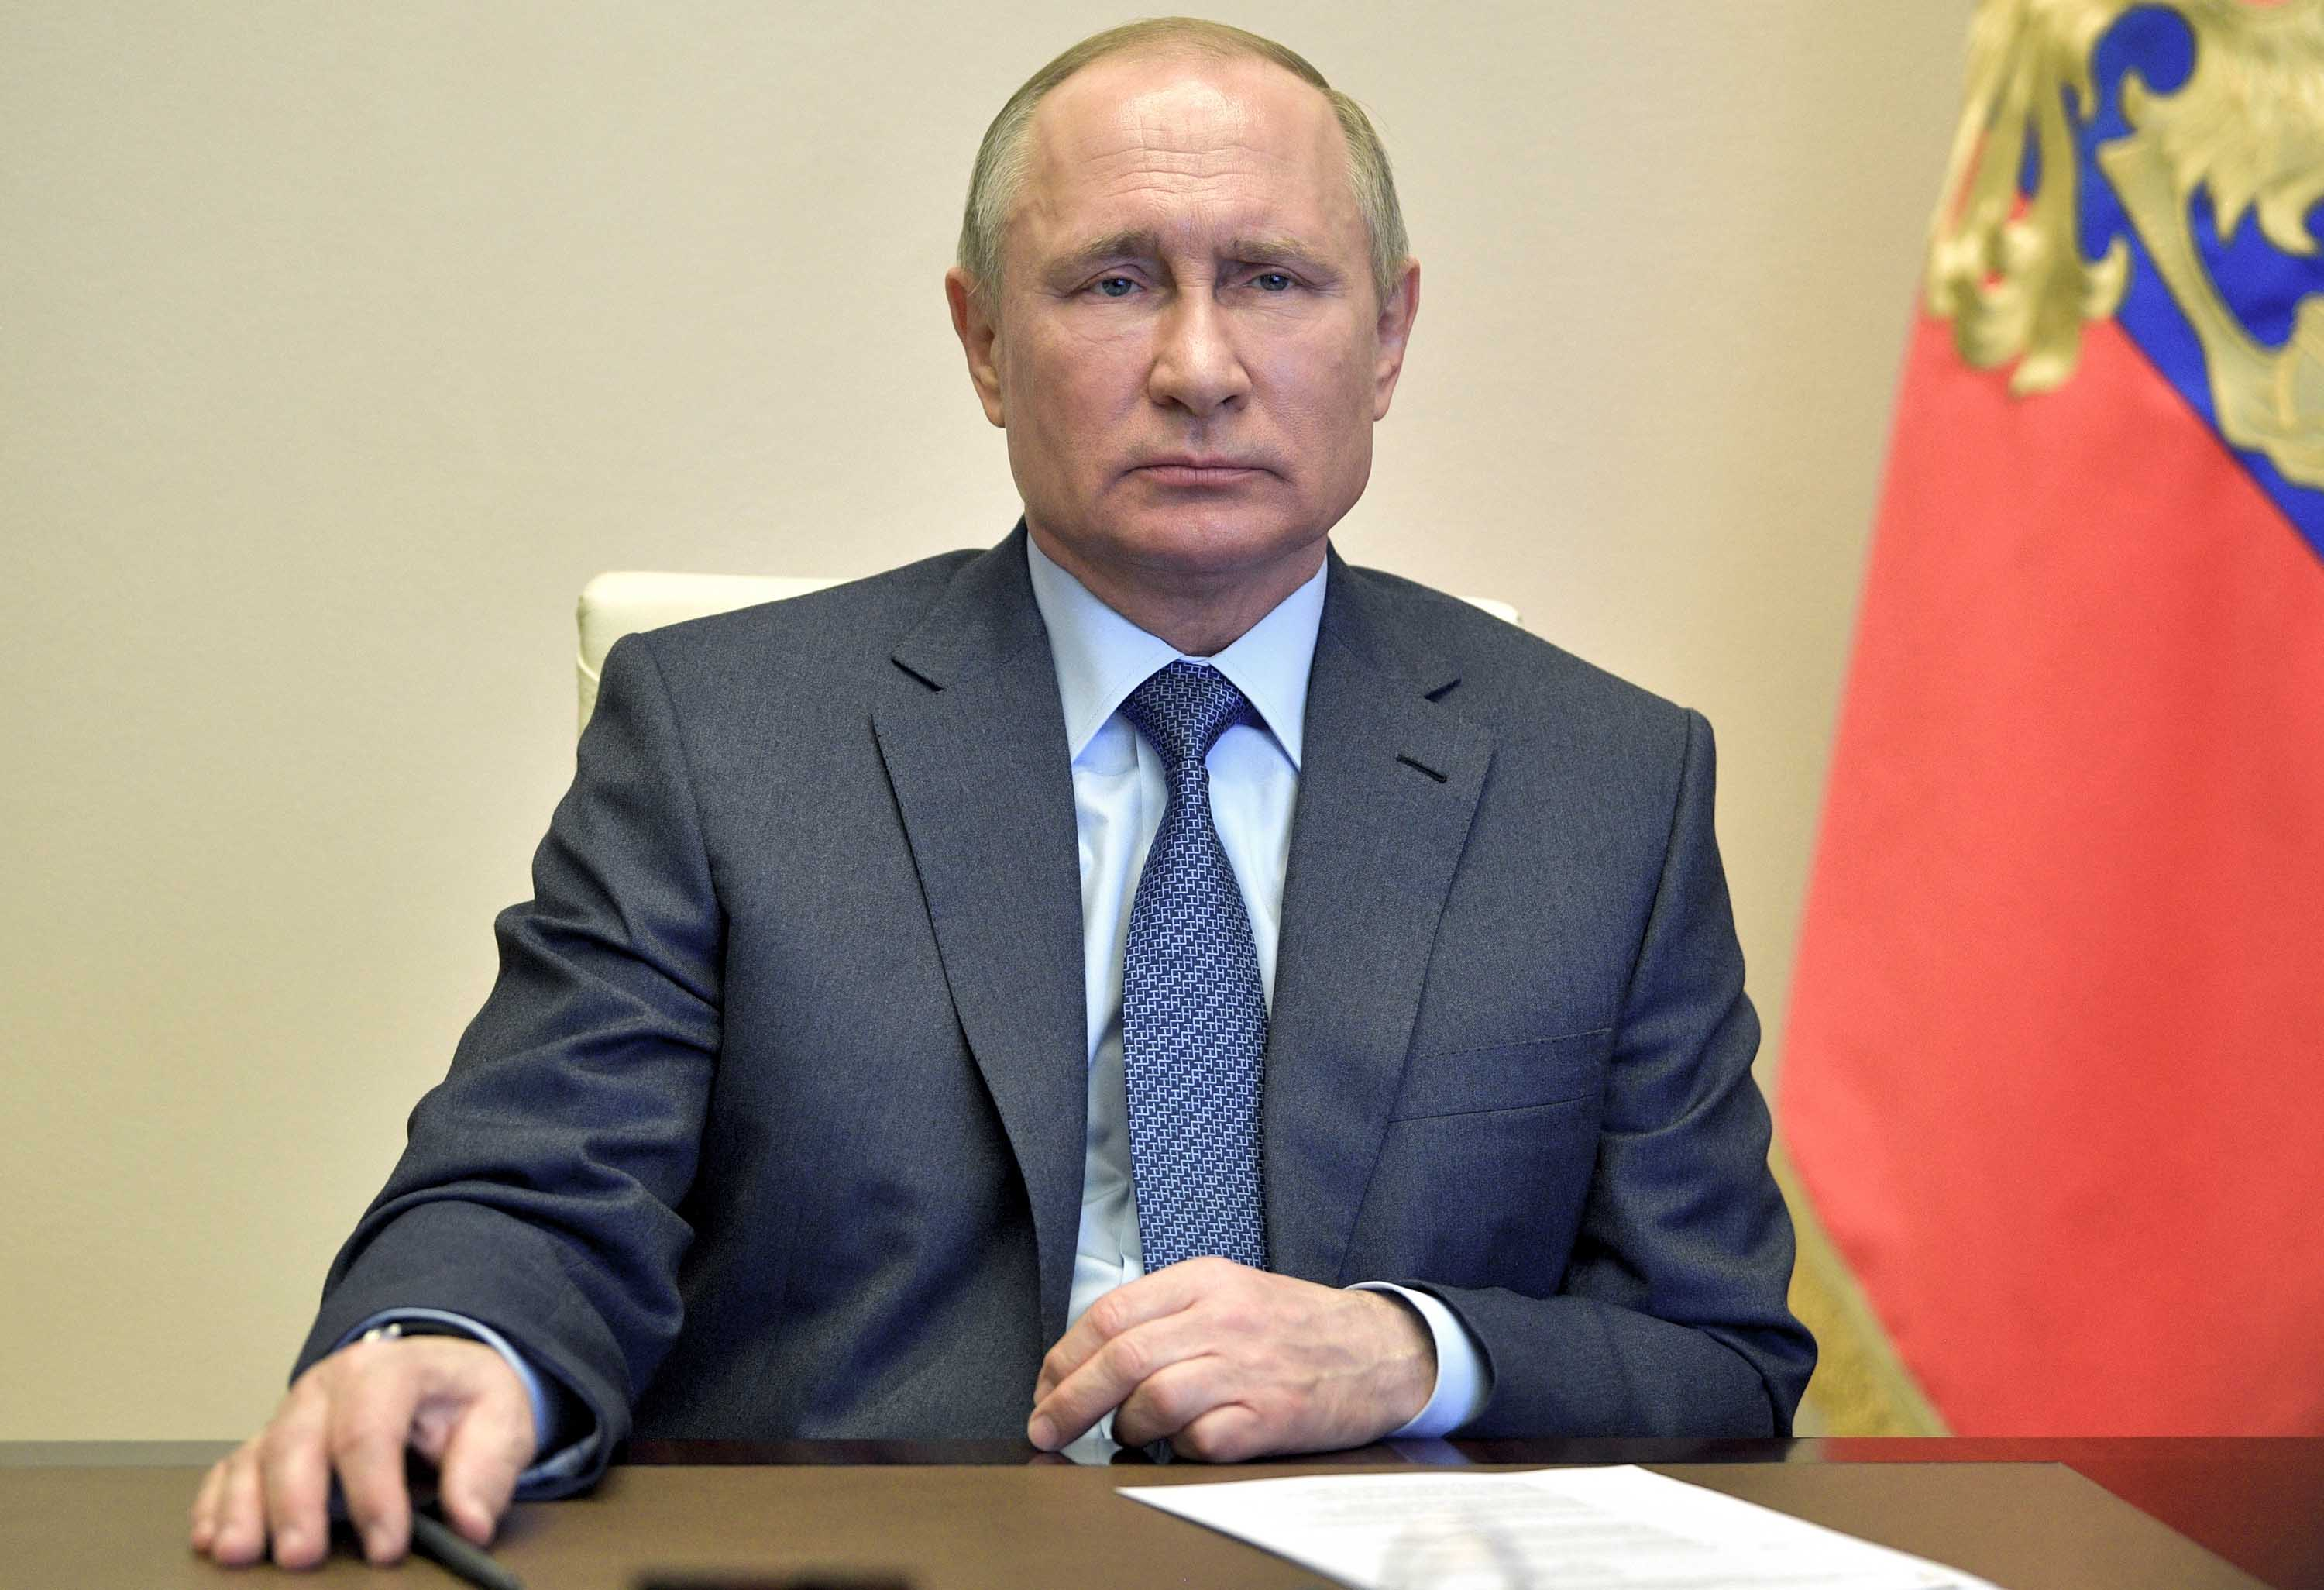 Russian President Vladimir Putin is pictured during a video conference in Moscow, Russia, on April 20.